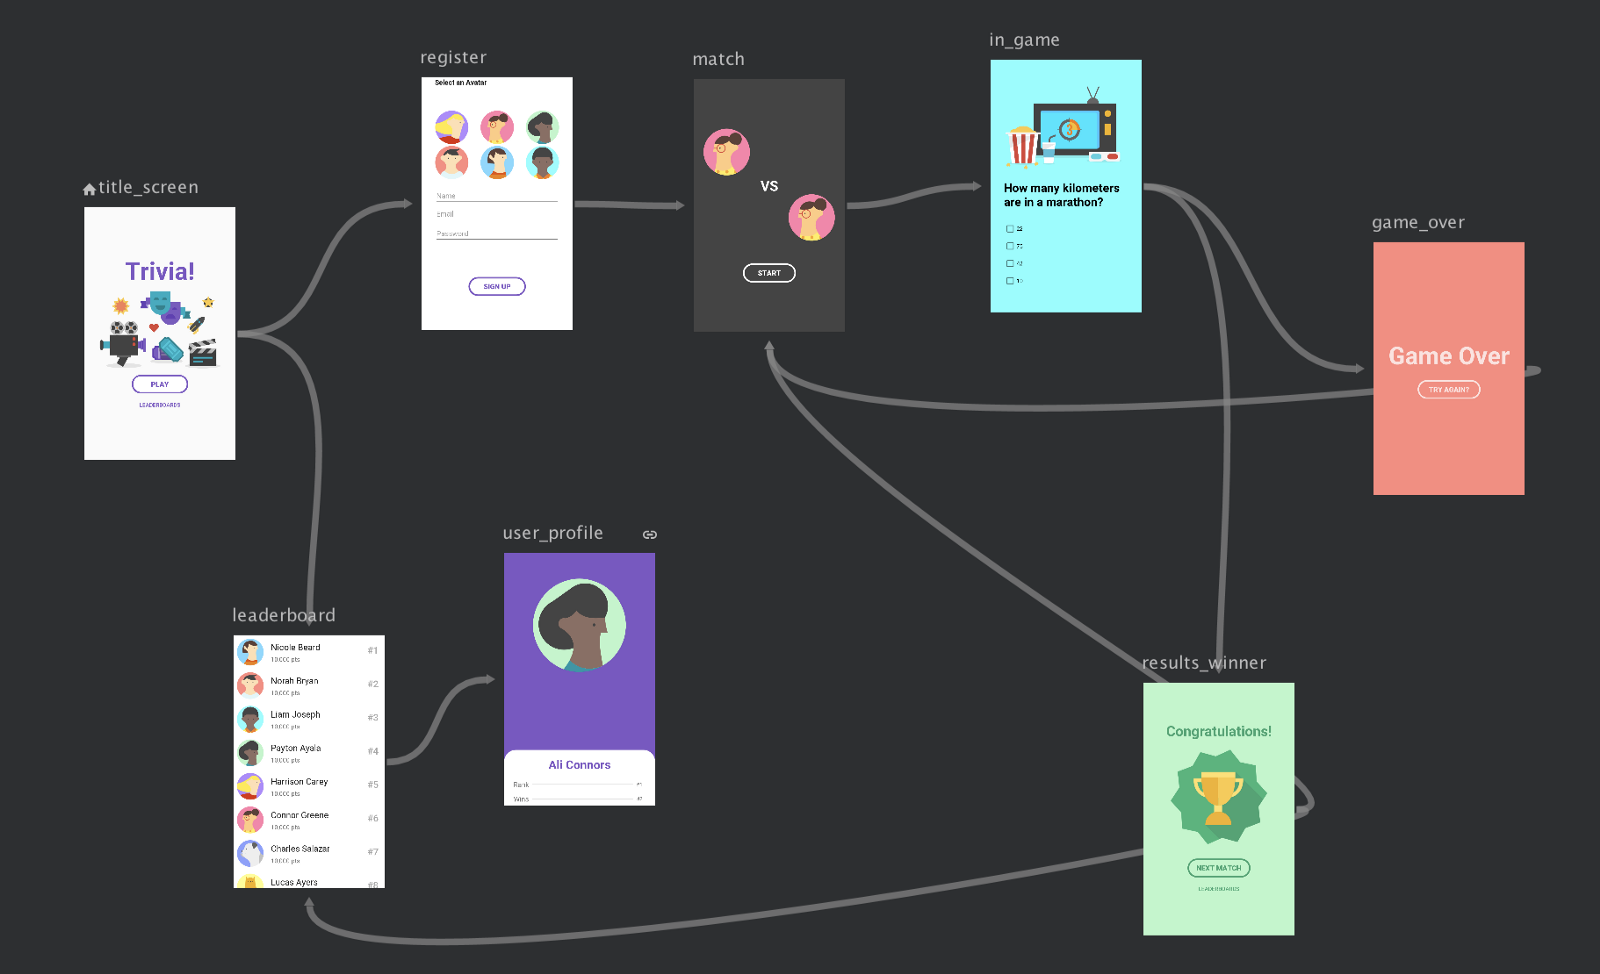 Jetpack Navigation Graph in Android Studio — Image Credits: [d.android.com](http://d.android.com)